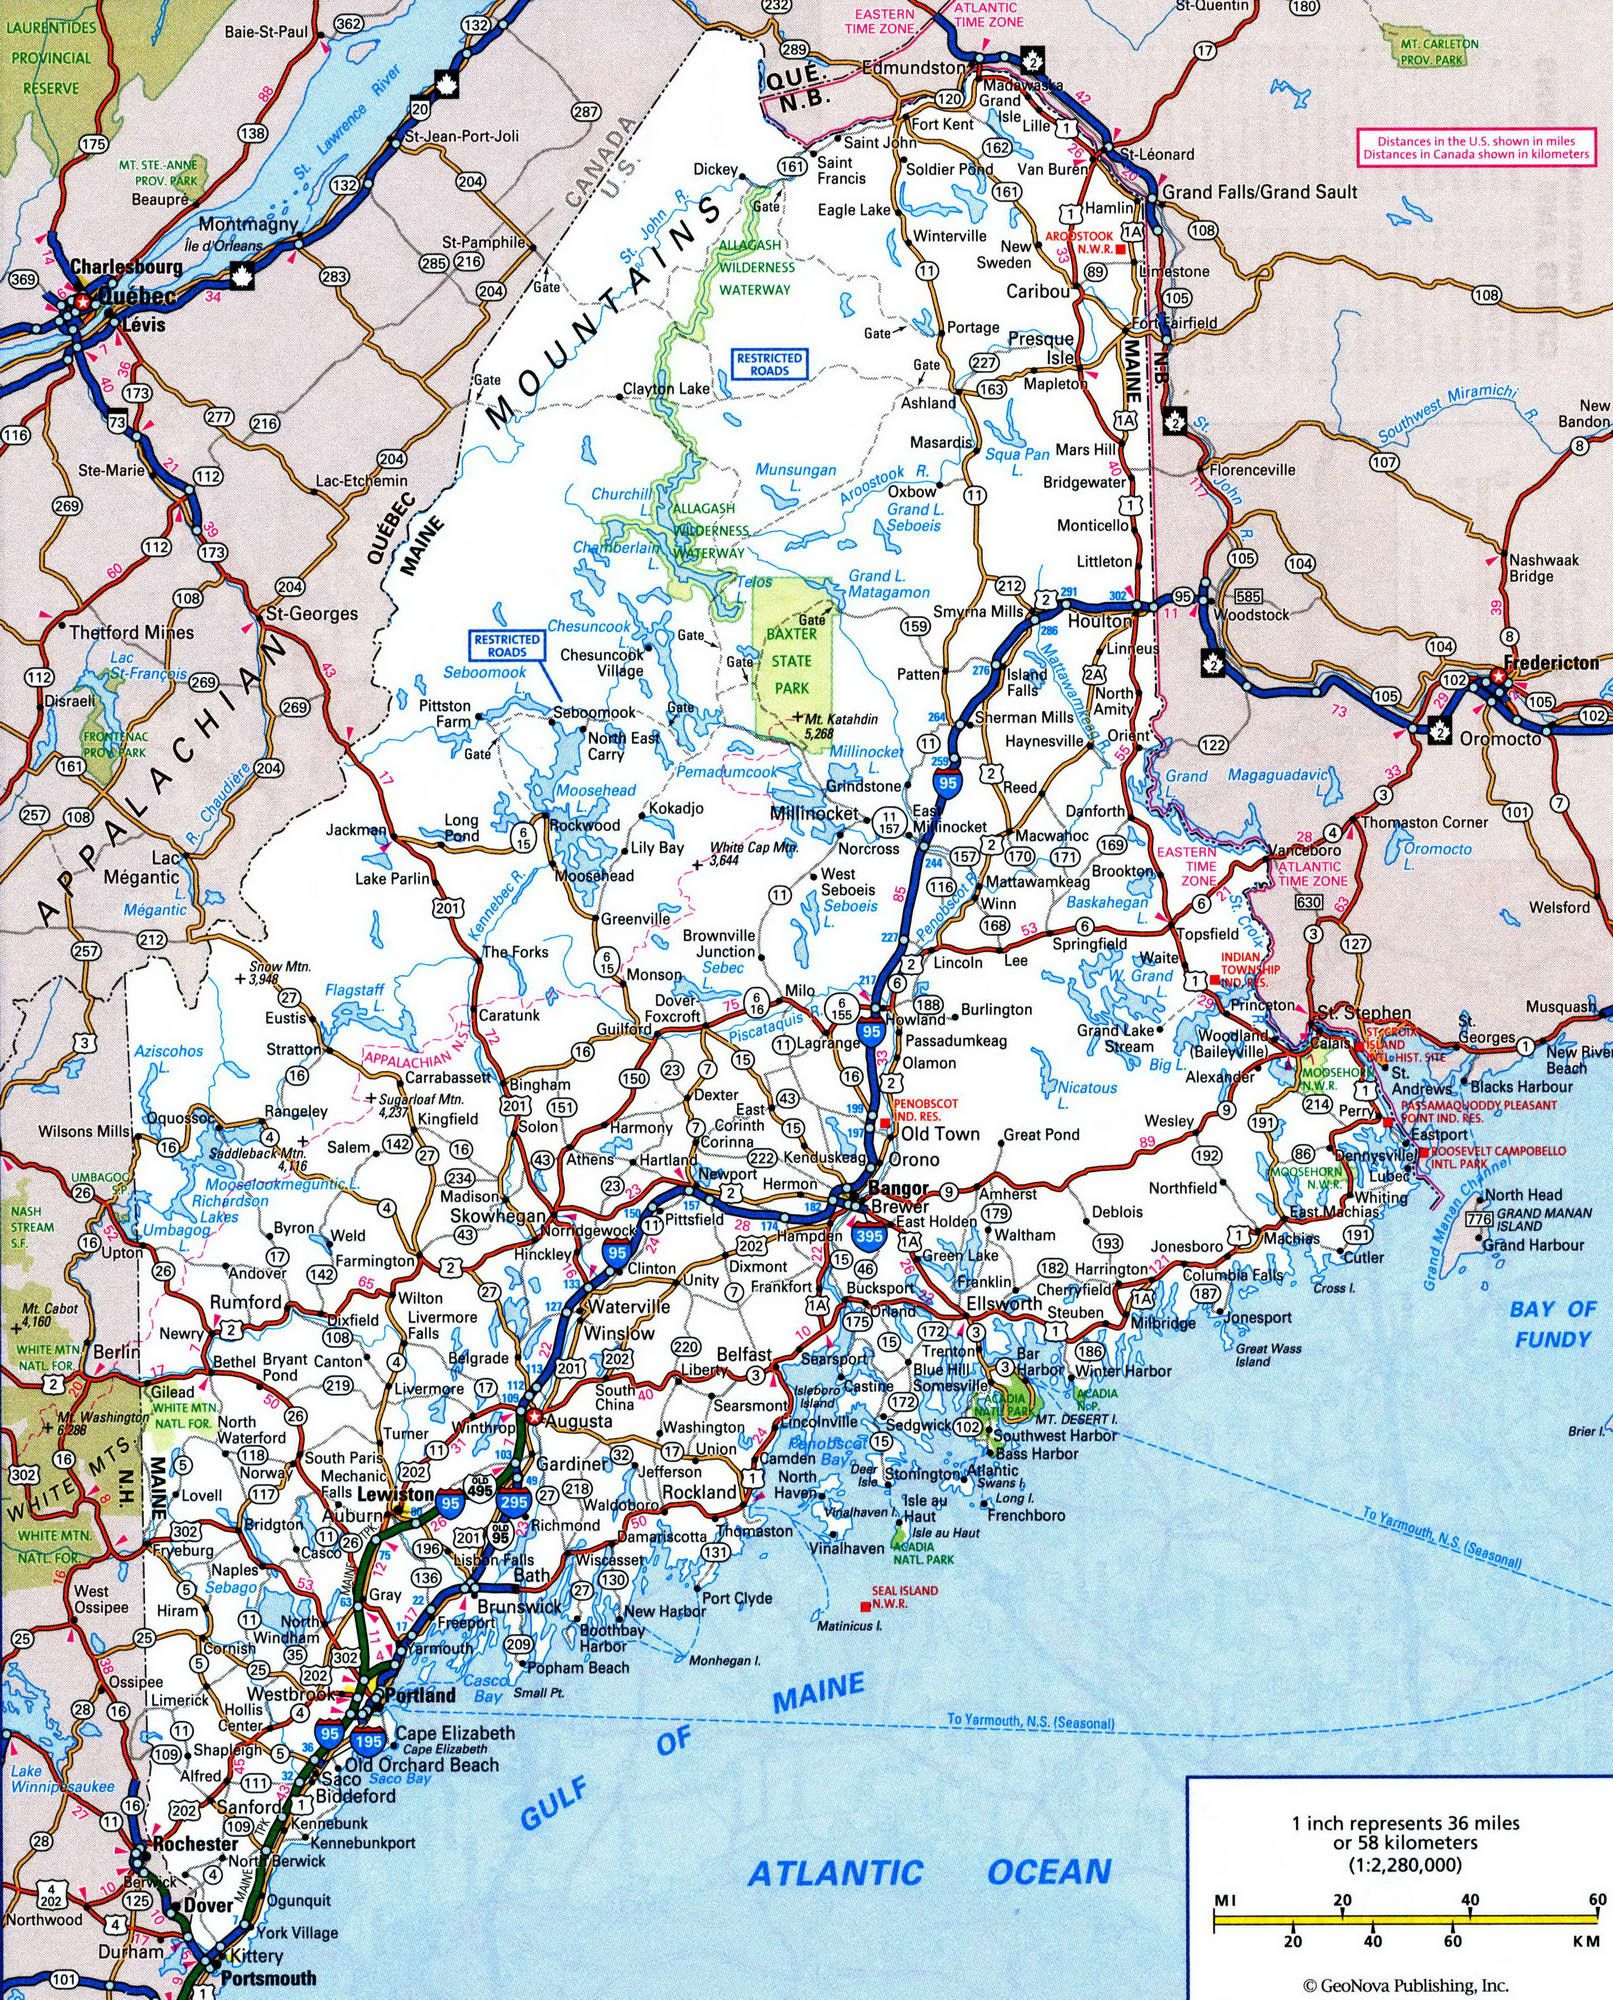 MAINE cities map - Google Search | STATES CITY MAPS | Maine, City ...